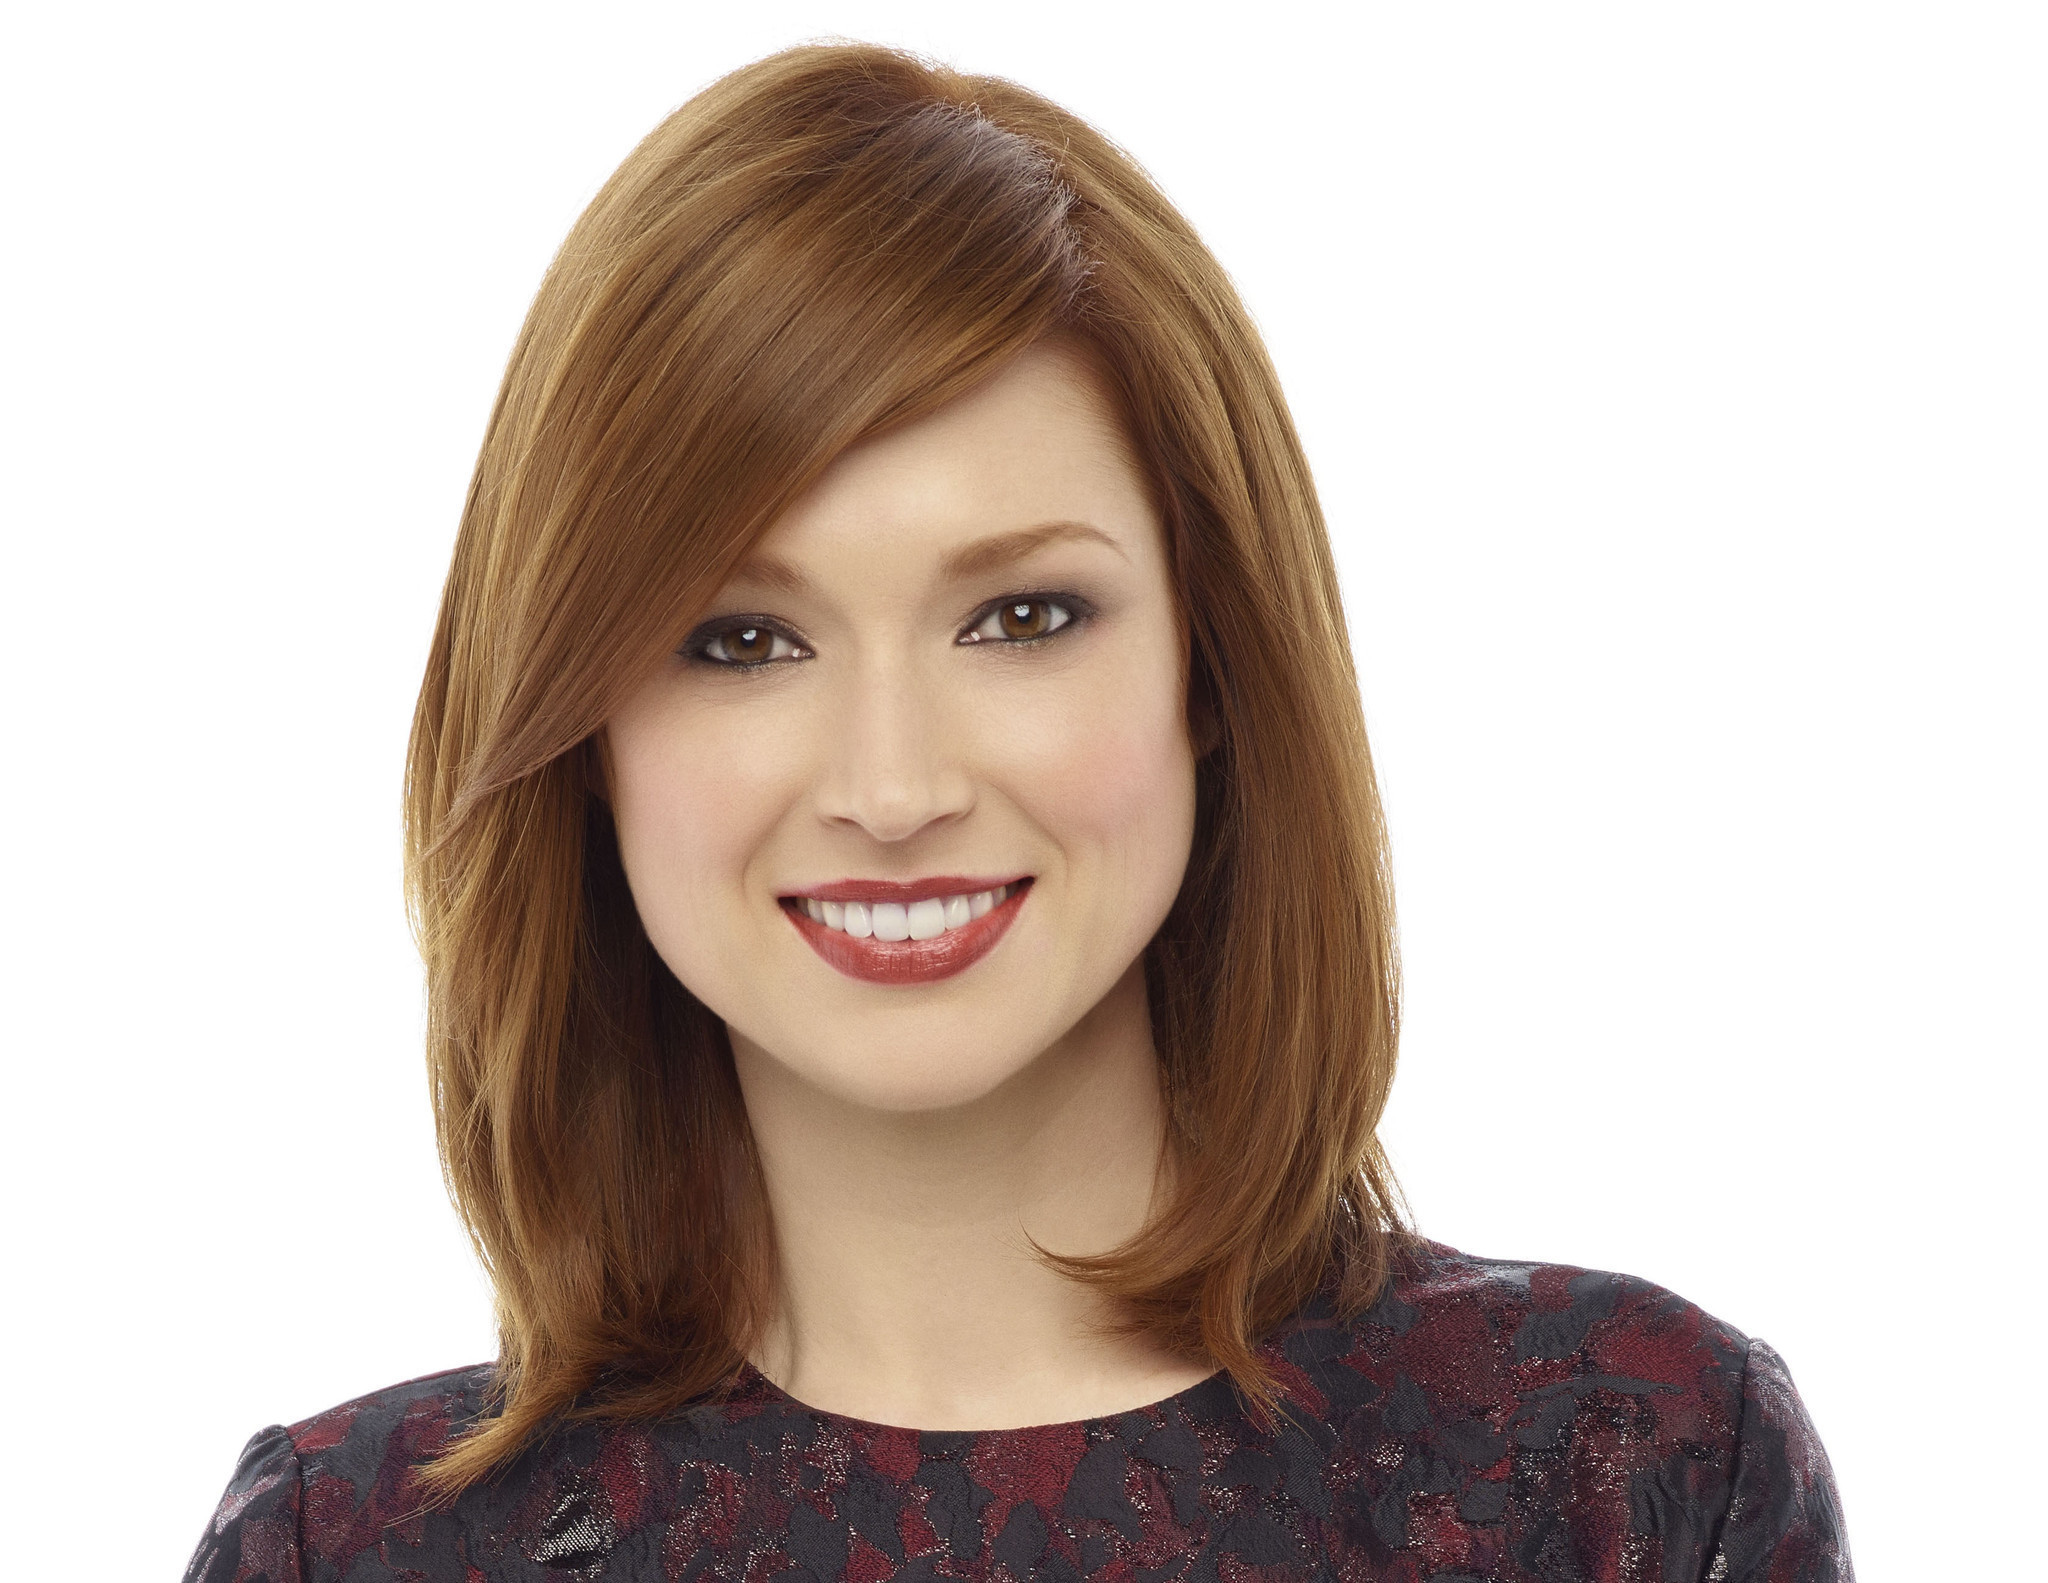 ellie kemper hqellie kemper office, ellie kemper fan, ellie kemper net worth, ellie kemper fansite, ellie kemper teeth, ellie kemper reddit, ellie kemper website, ellie kemper running, ellie kemper hq, ellie kemper stand up, ellie kemper ellen, ellie kemper instagram, ellie kemper interview, ellie kemper husband, ellie kemper twitter, ellie kemper married, ellie kemper wikipedia